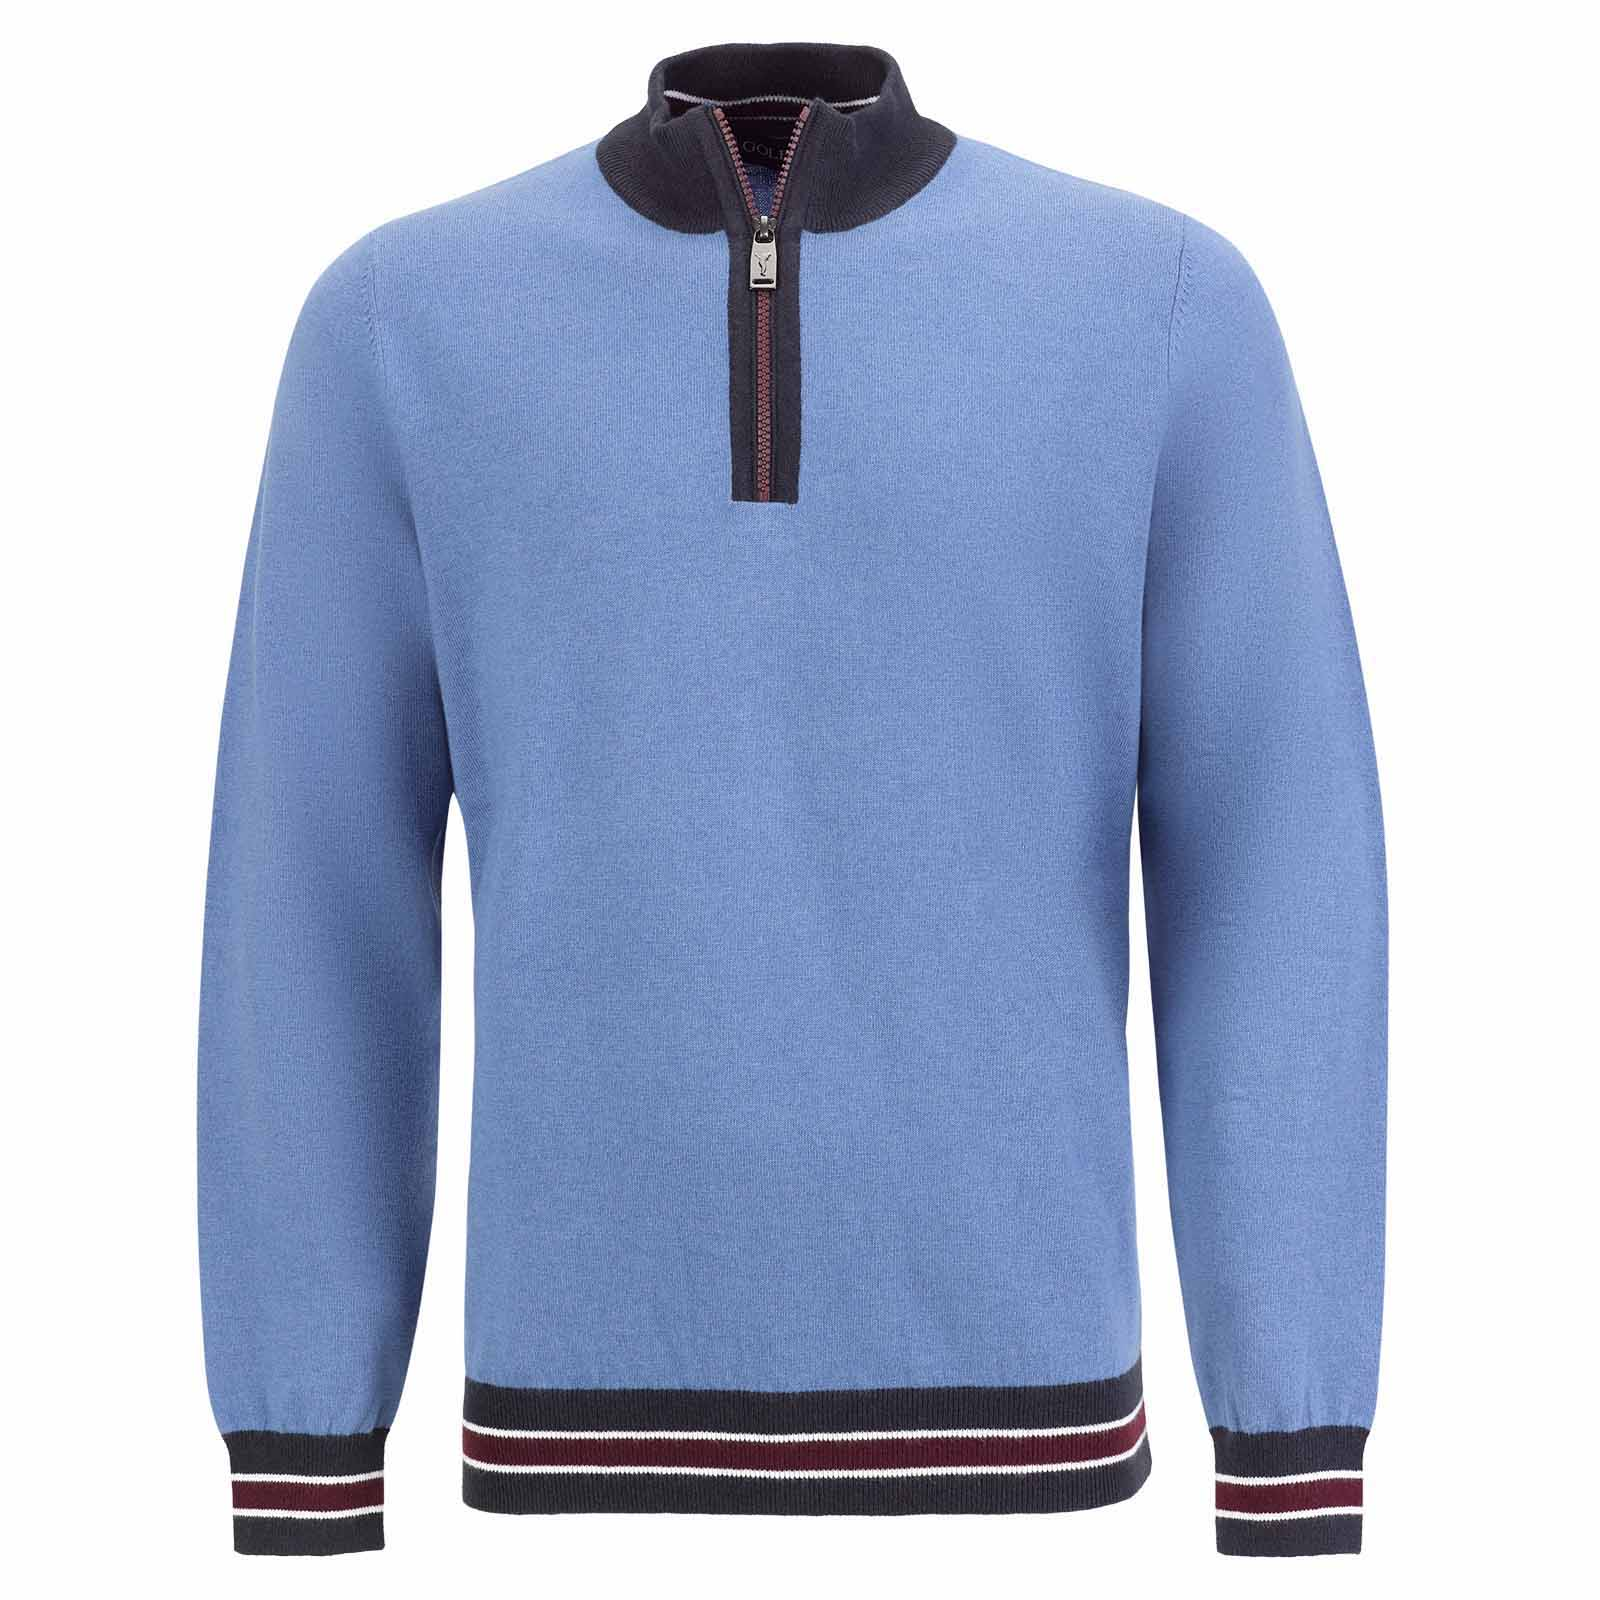 Men's knitted Merino troyer with short zip and subtle colour contrasts